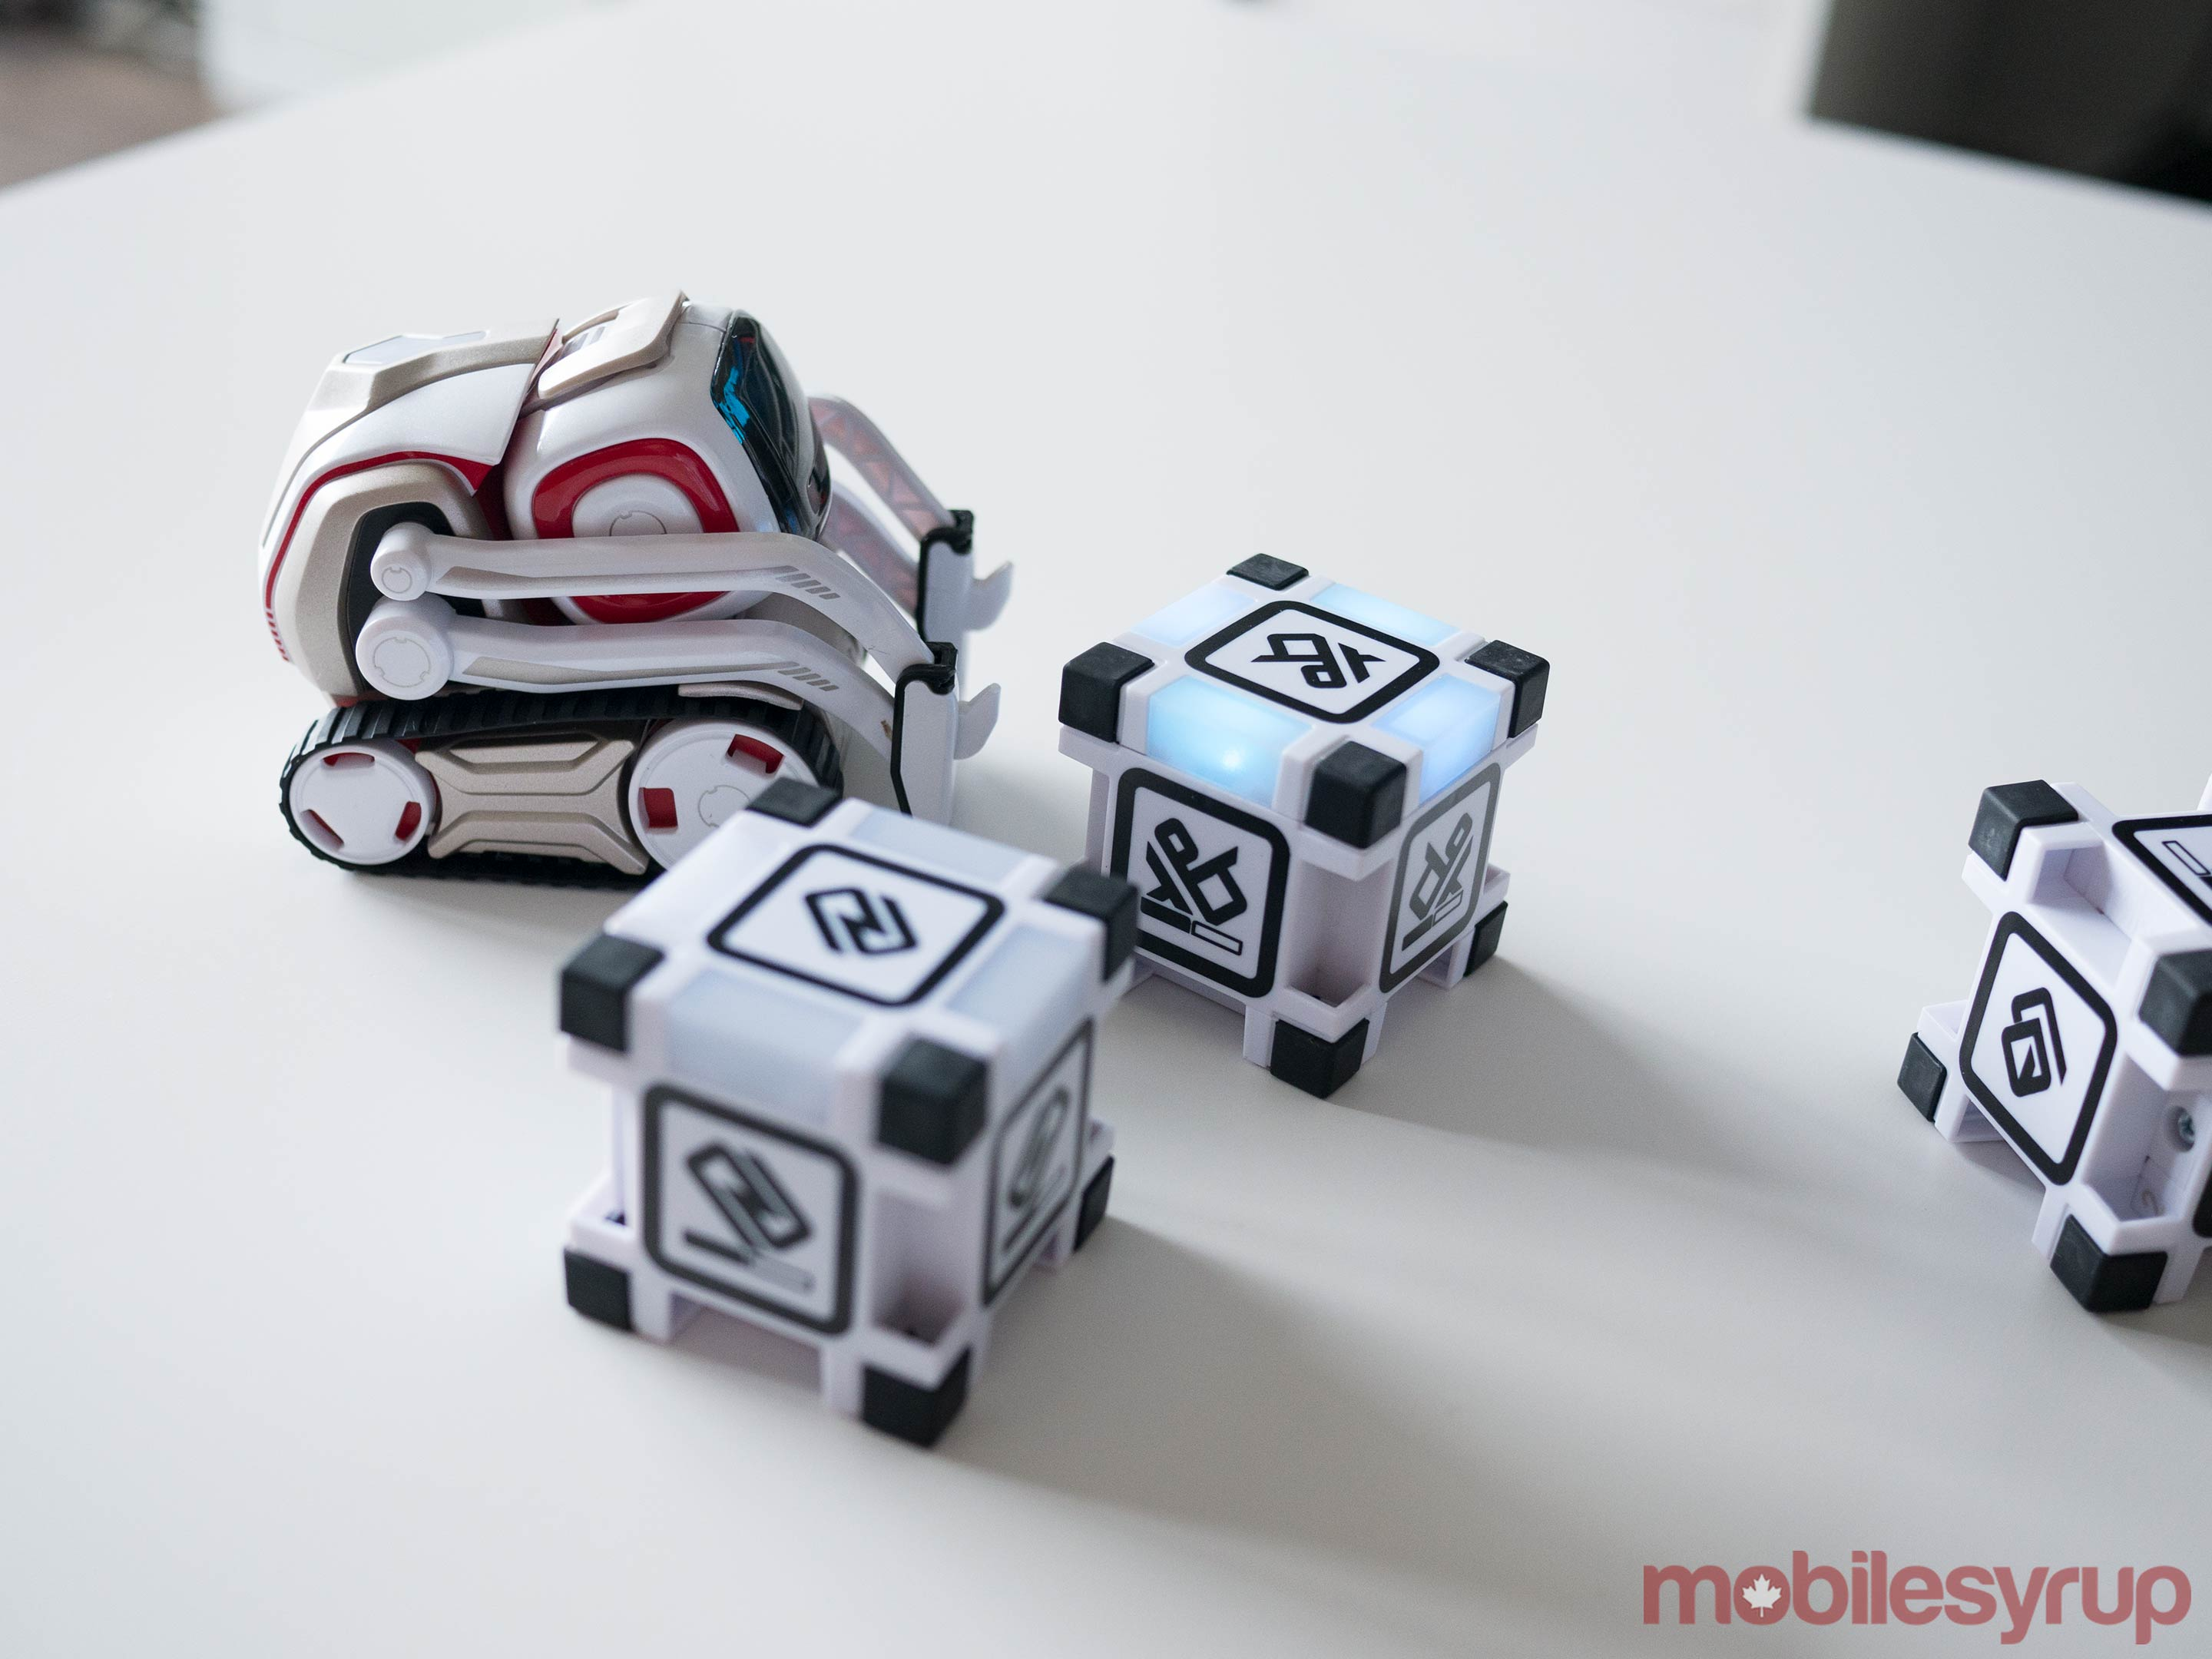 Cozmo playing with blocks